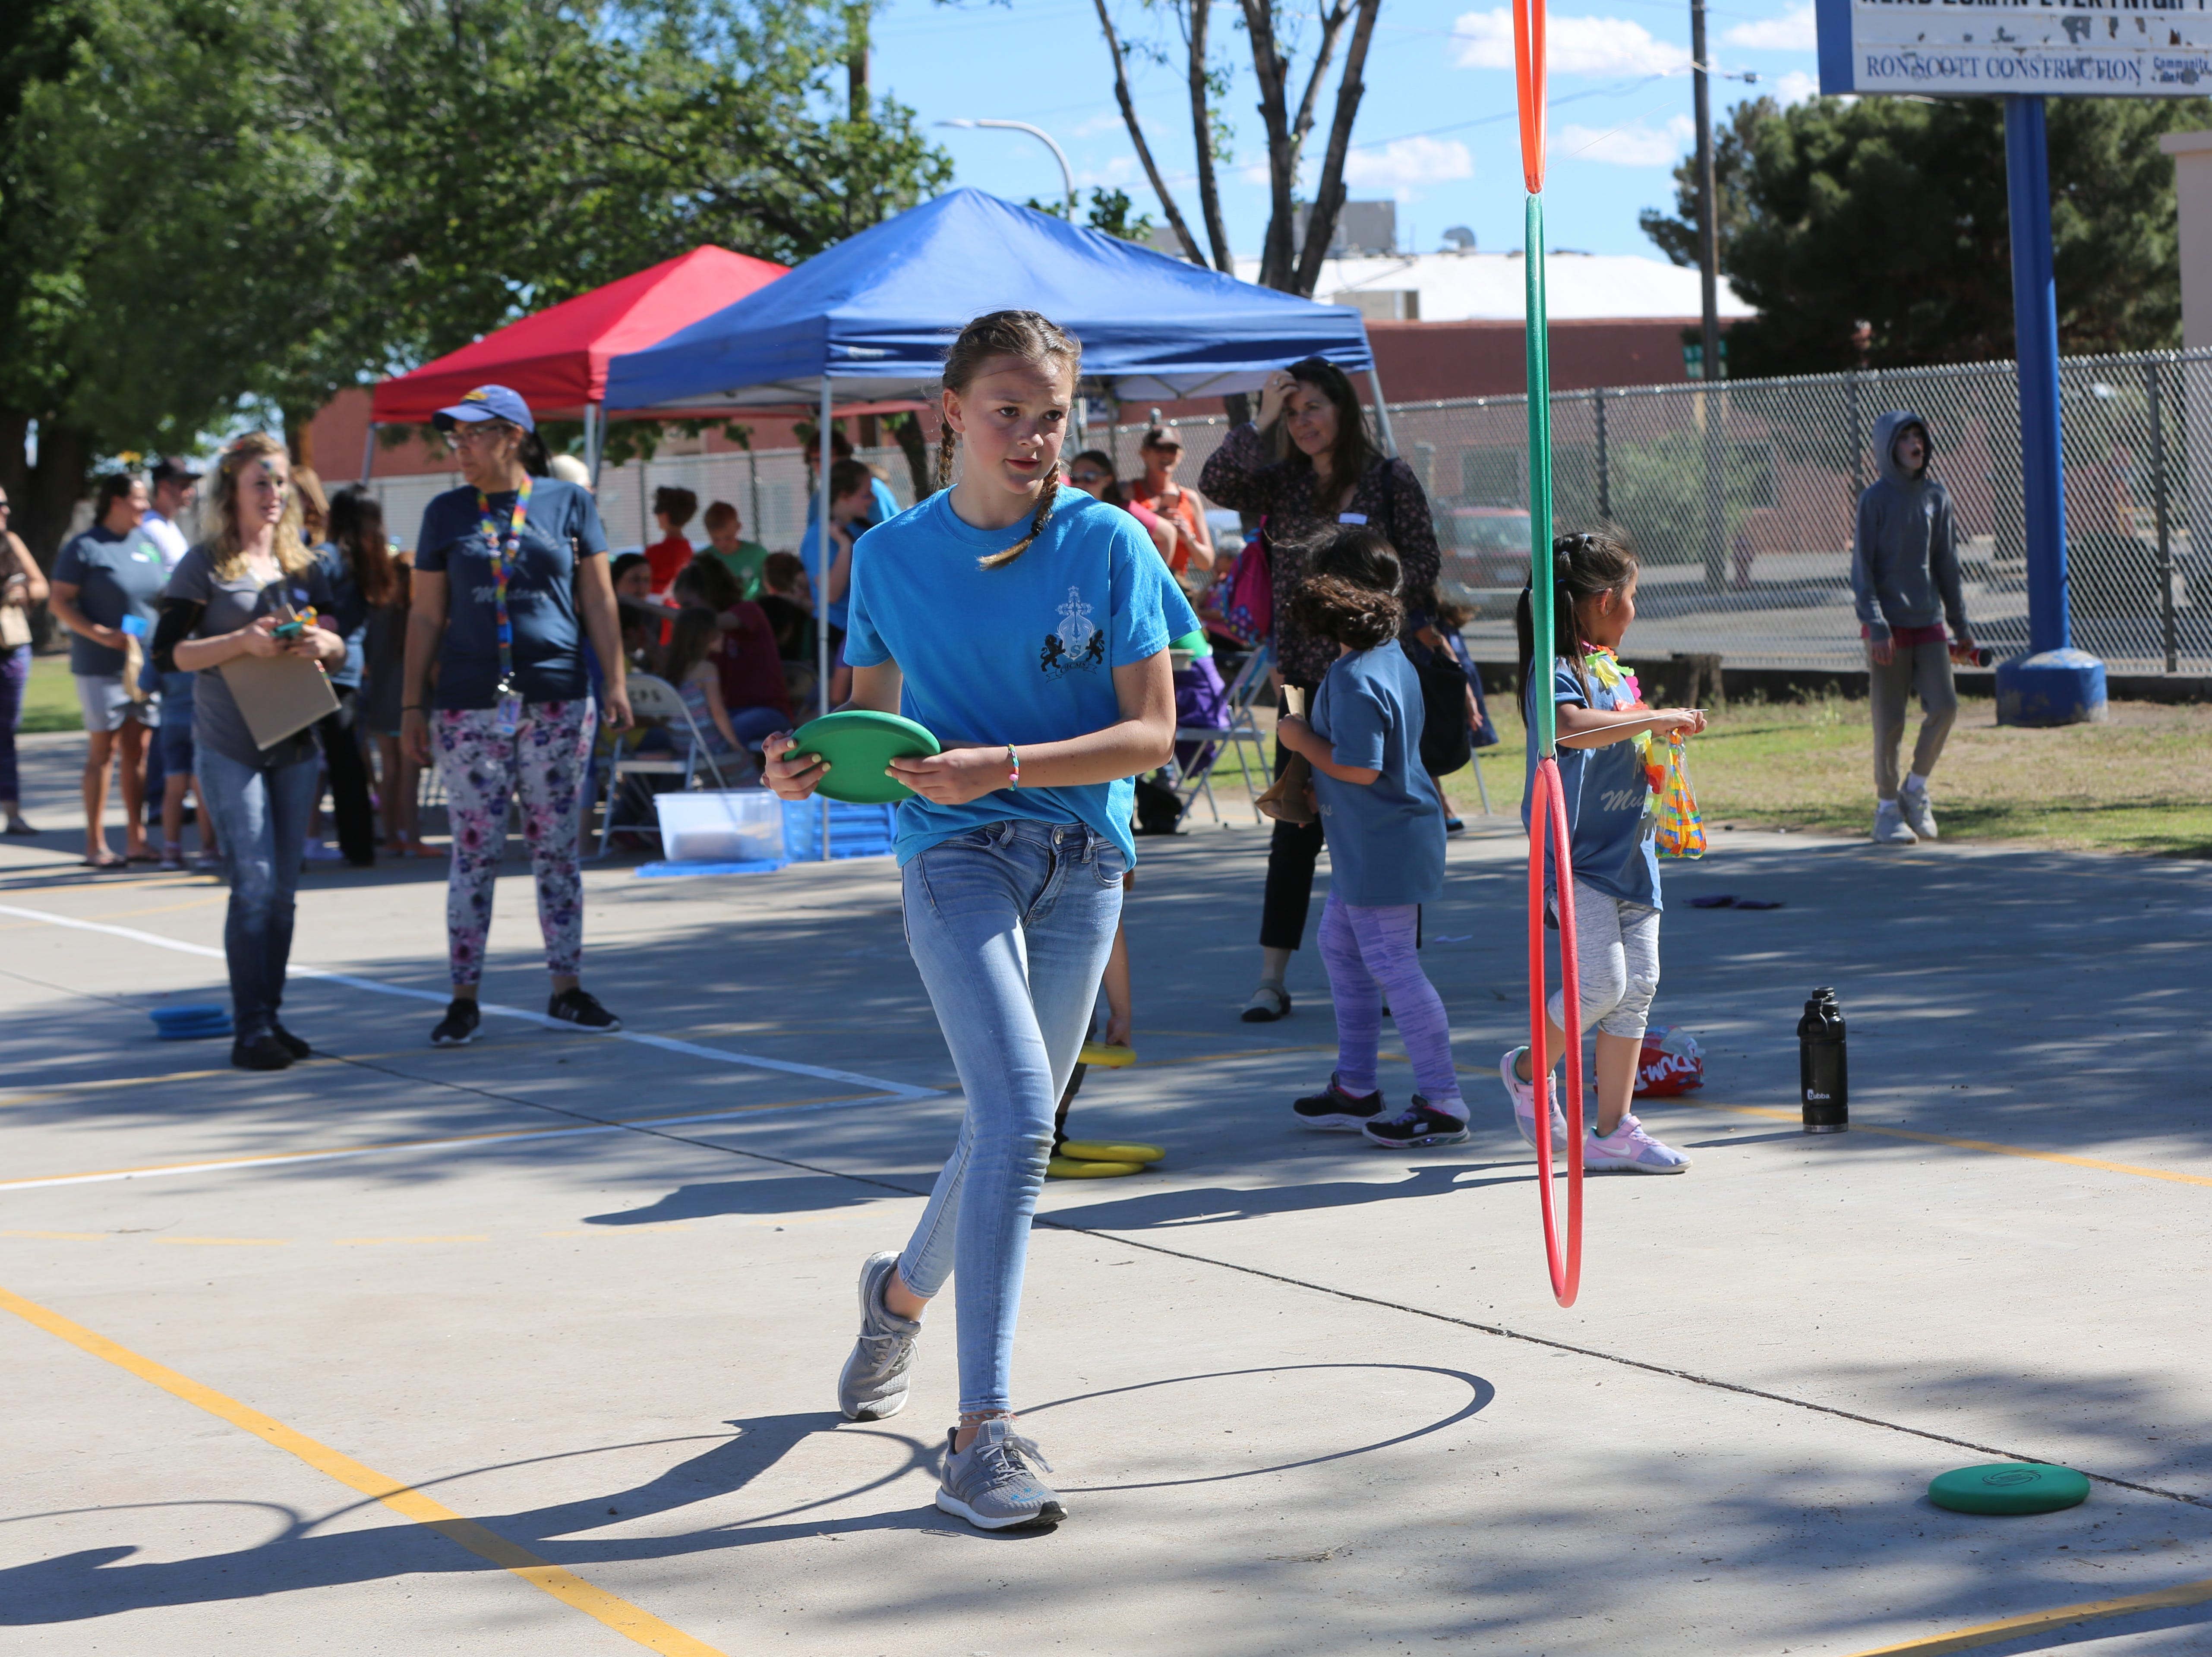 A student from Cherry Hills Middle School in Highlands Ranch, Colorado, plays a game during a community carnival to honor Central Elementary's 70th anniversary. The school in Colorado provided all the jumping balloons and games.